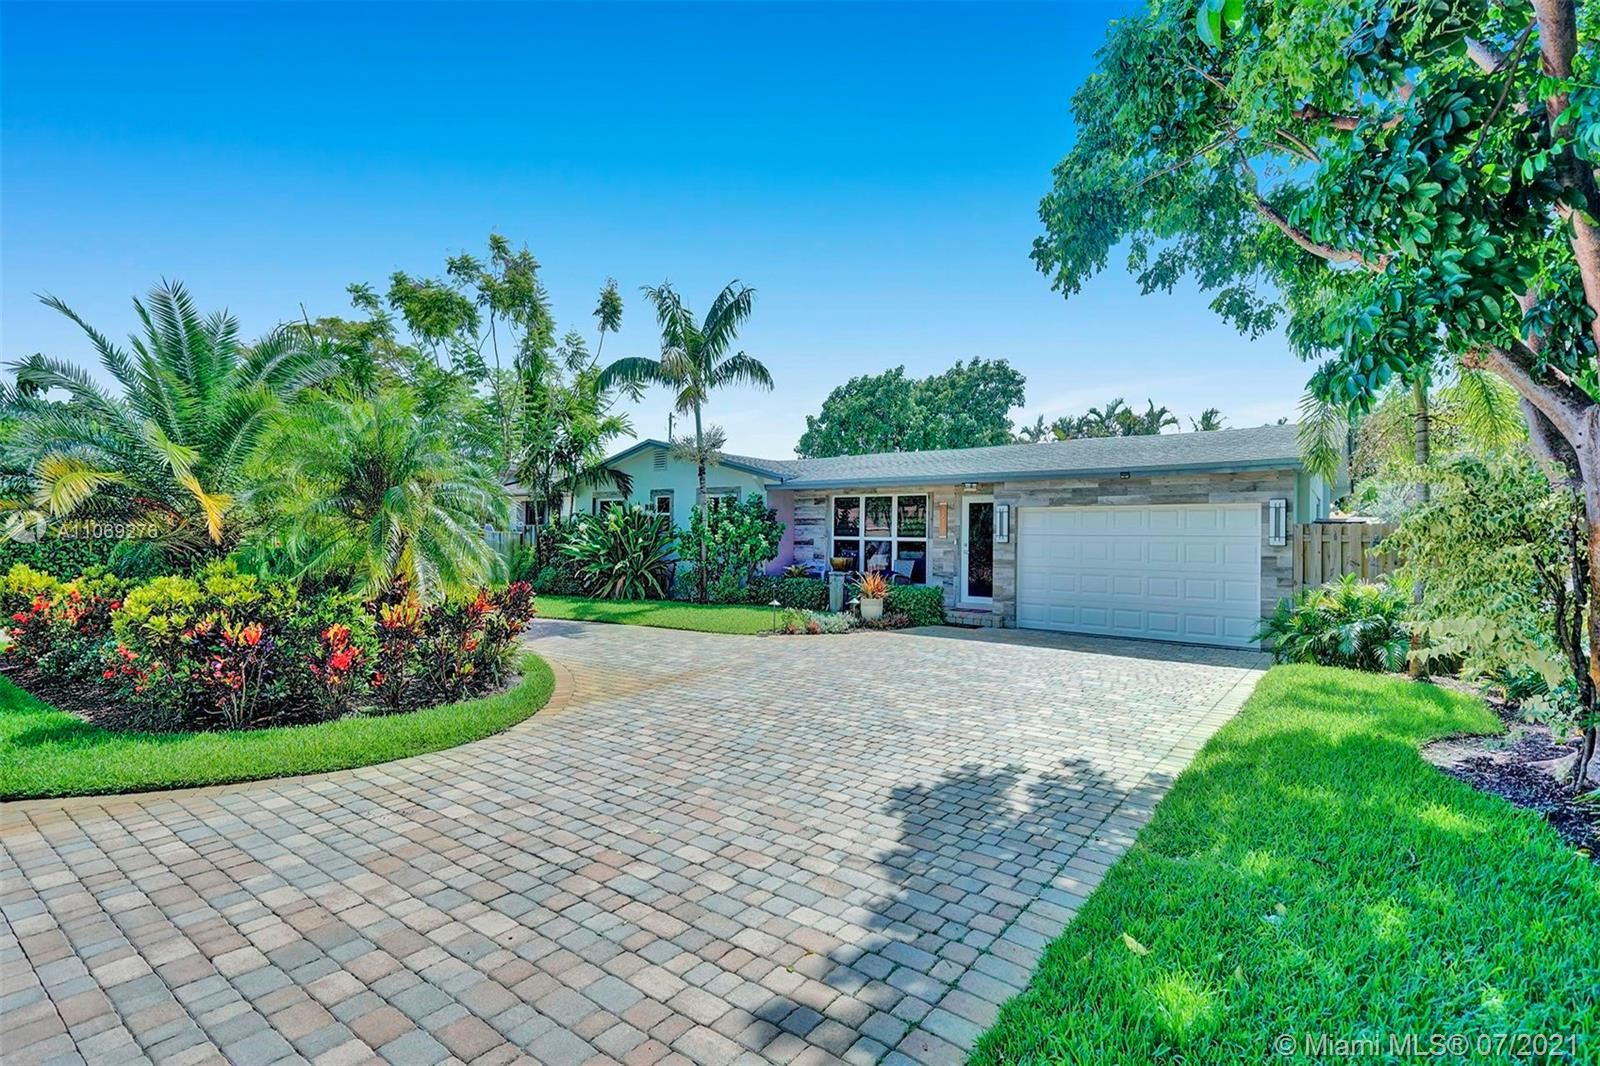 2617 NW 6th Ave, Wilton Manors, FL 33311 - #: A11069276